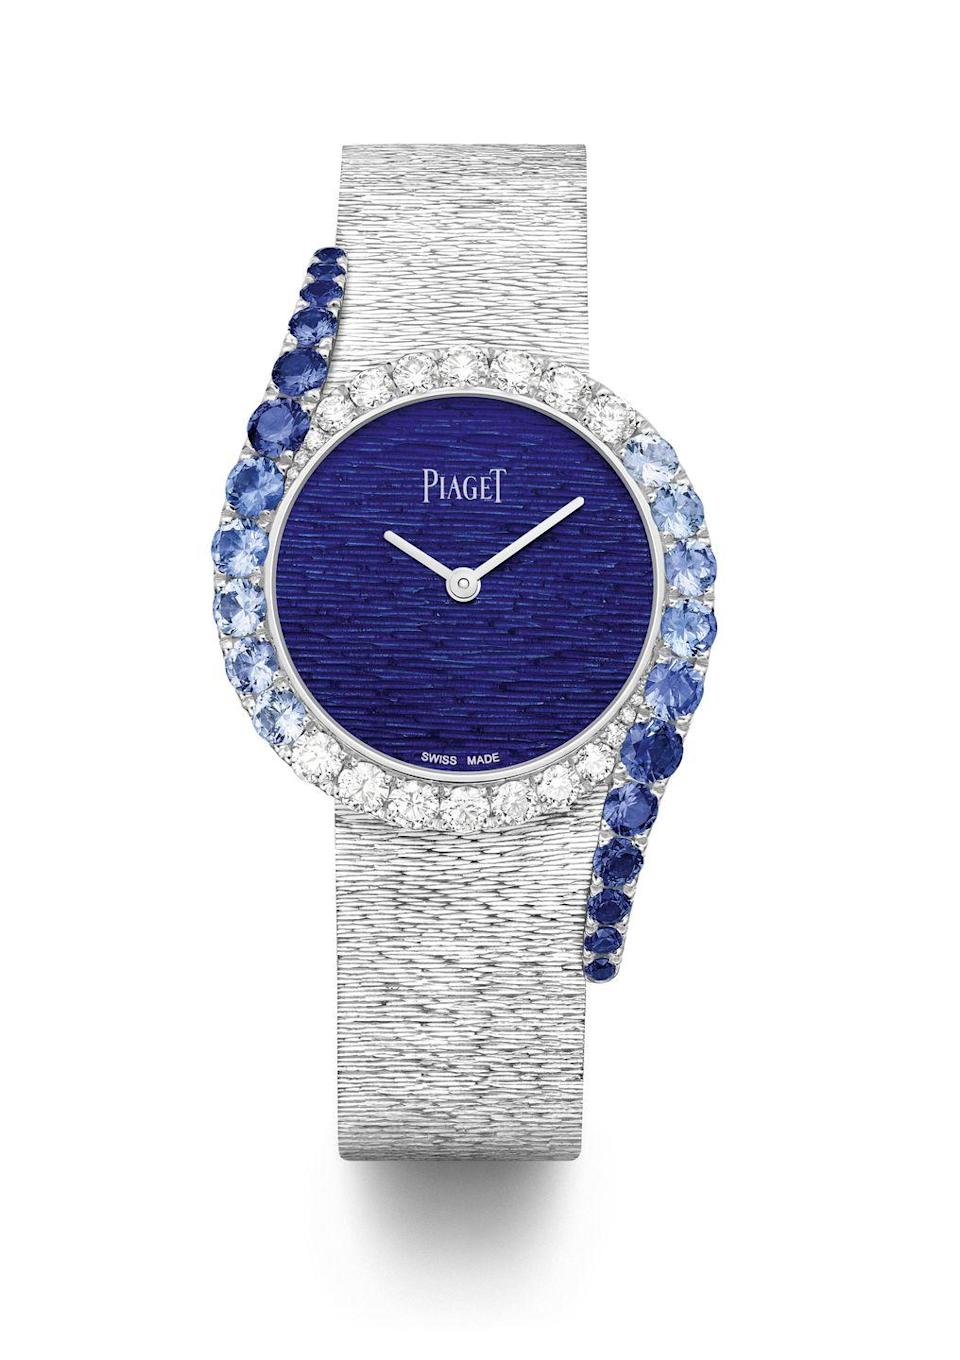 "<p><a class=""link rapid-noclick-resp"" href=""https://www.piaget.com/watches/limelight-gala/white-gold-diamond-sapphire-watch-g0a45163"" rel=""nofollow noopener"" target=""_blank"" data-ylk=""slk:SHOP NOW"">SHOP NOW</a></p><p>Piaget's exquisitely-crafted jewellery watches capture all the spirit and pizazz of the Swinging '60s and '70s, which is when the house first forayed into the world of bejewelled timepieces. </p><p>This newest model features a decadent white gold mesh bracelet, a white gold engraved dial covered with translucent blue enamel to evoke the shimmering Mediterranean Sea, plus a case set with 20 brilliant-cut diamonds and 22 sapphires. </p><p>Limelight Gala watch, price on request, <a href=""https://www.piaget.com/watches/limelight-gala/white-gold-diamond-sapphire-watch-g0a45163"" rel=""nofollow noopener"" target=""_blank"" data-ylk=""slk:Piaget"" class=""link rapid-noclick-resp"">Piaget</a></p>"